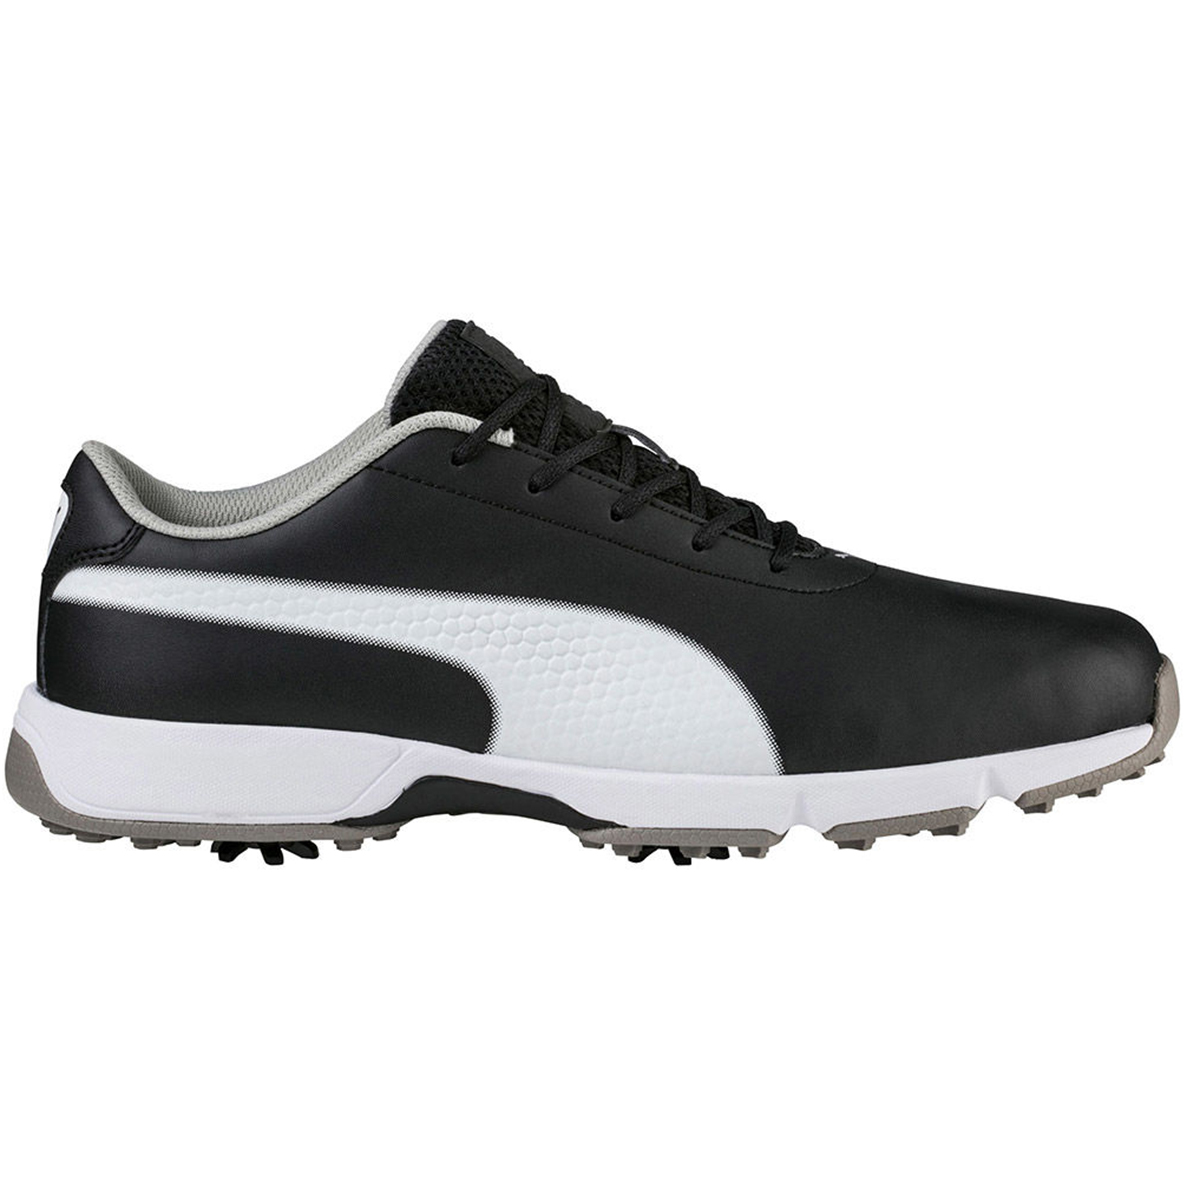 Chaussures Puma Golf Drive Cleated Classic